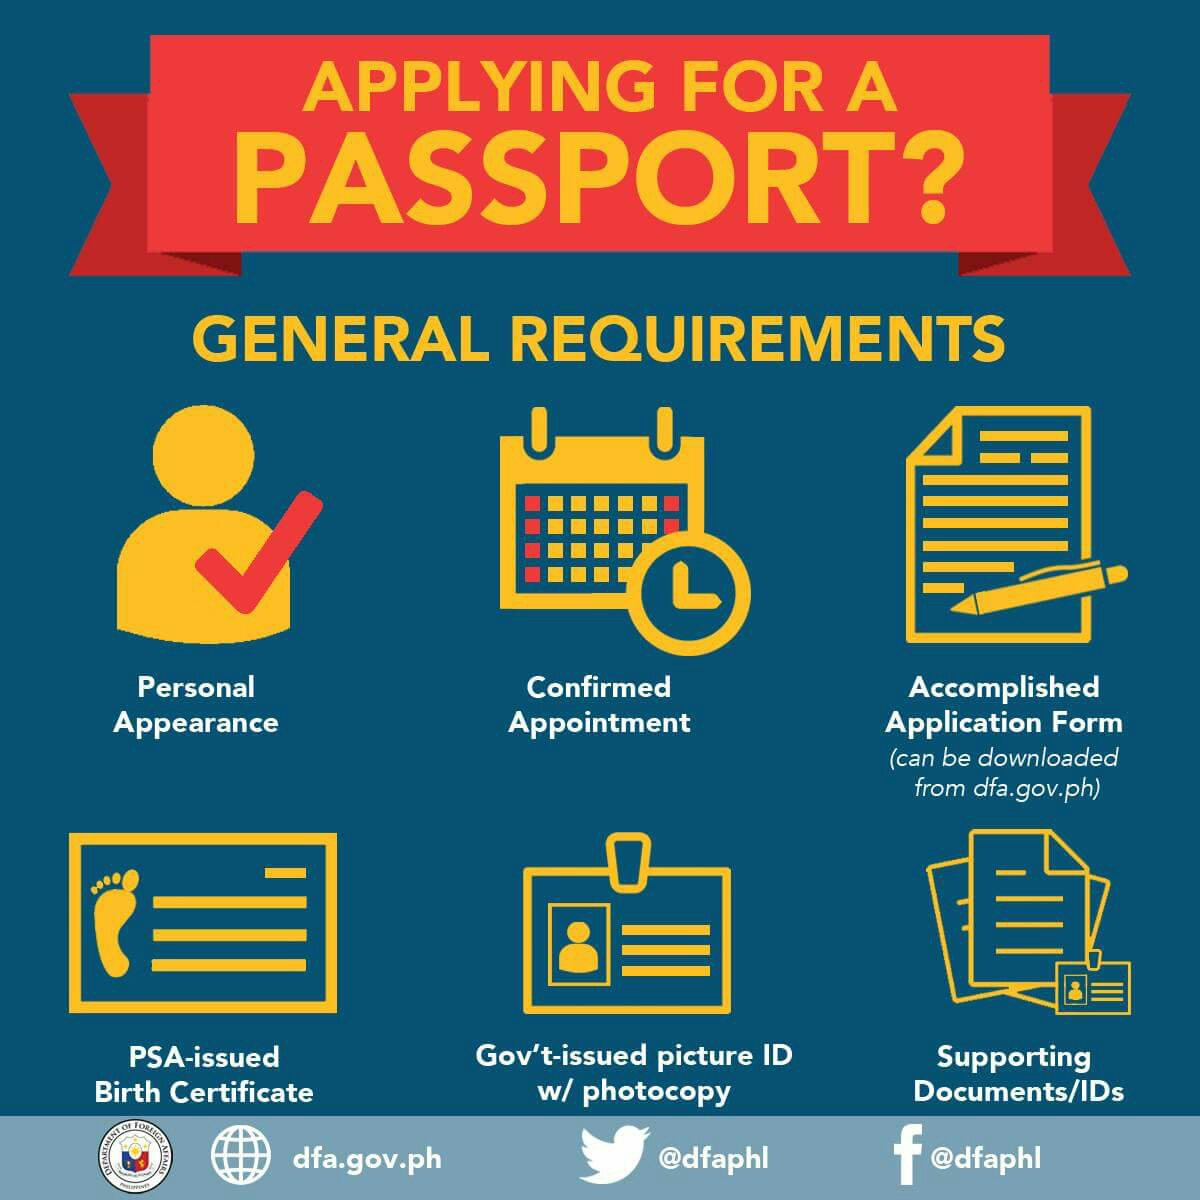 d77c69bceaa45e1147261338e36ba8ad - Applying for a Philippine Passport - General Topic